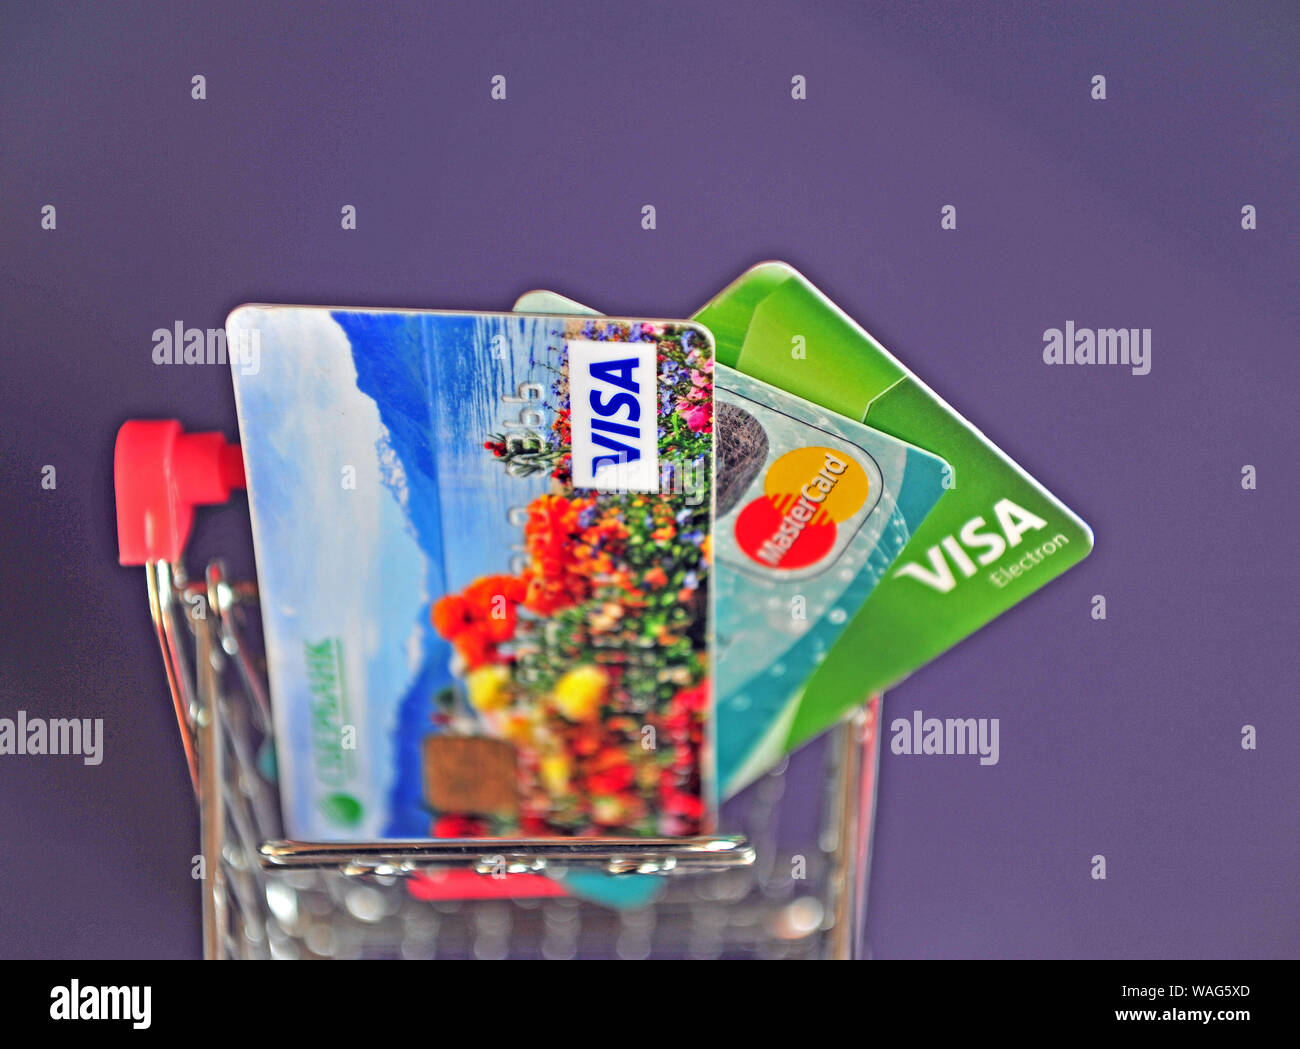 Yaroslavl, Russia - August 20, 2019: Mini shopping trolley with credit cards on the table. Stock Photo